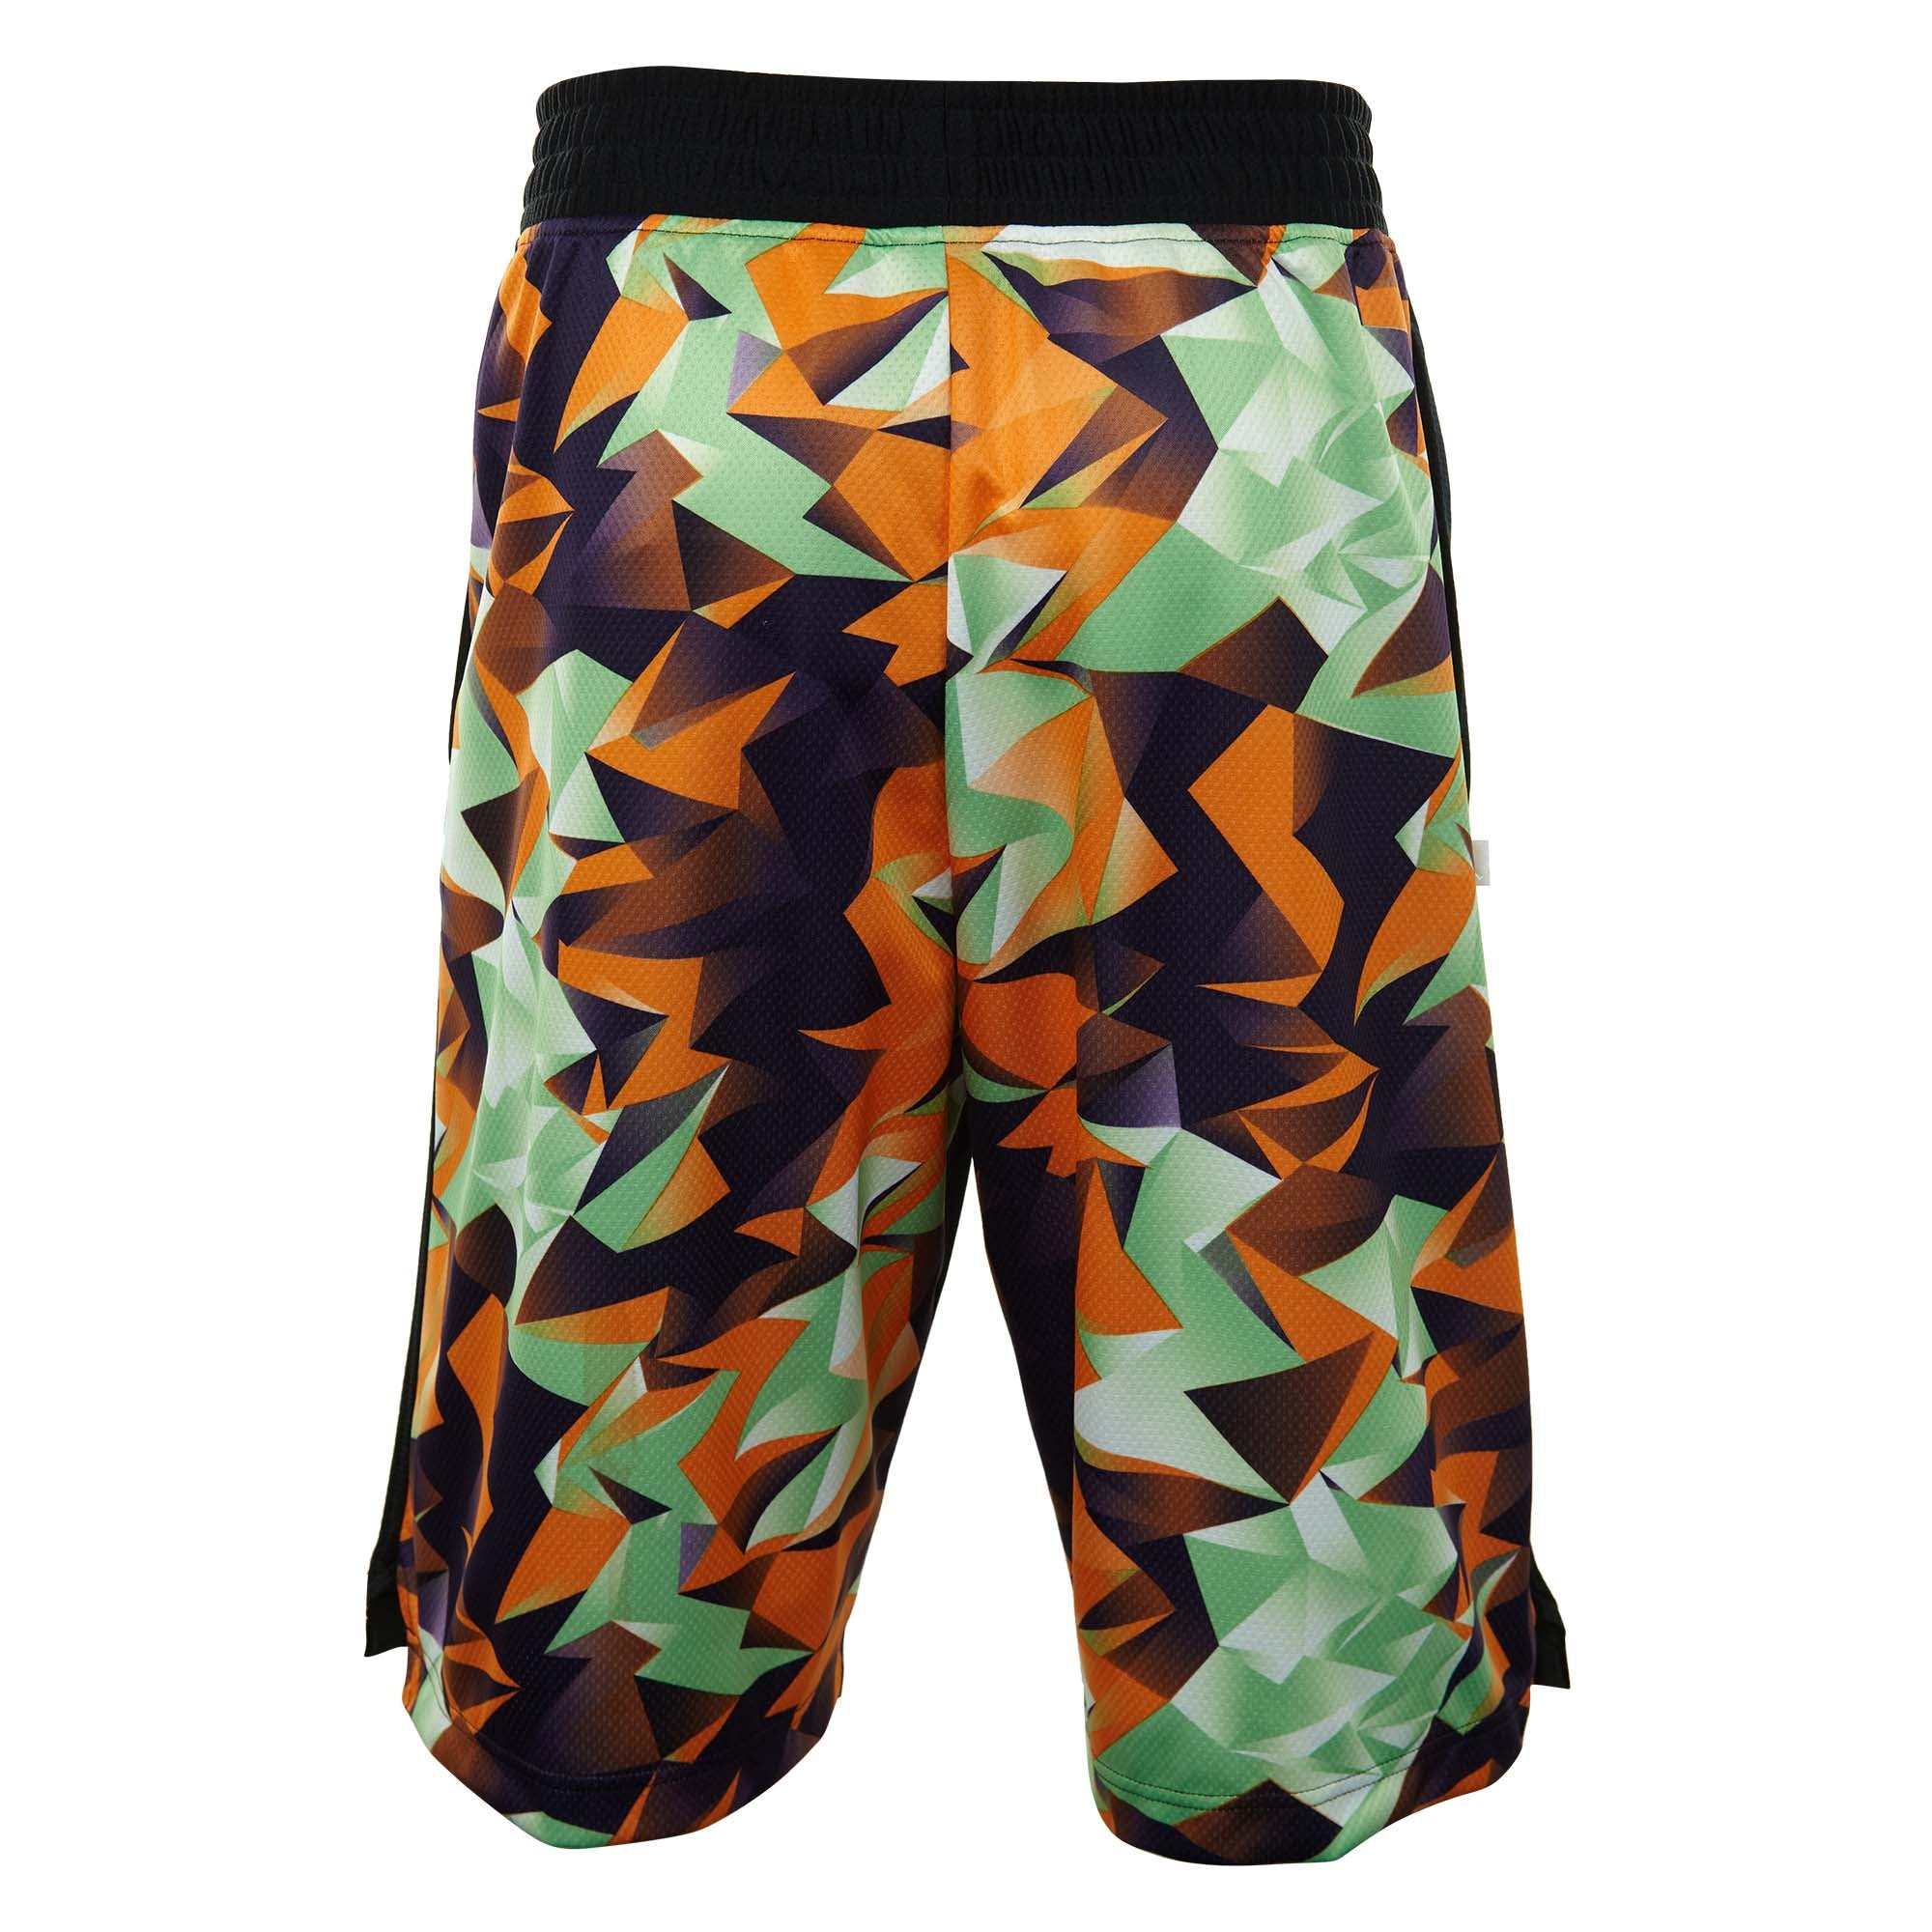 db9513e9430 Jordan 7 Vii Retro Hare Basketball Shorts Mens Style : 642594. AIR JORDAN